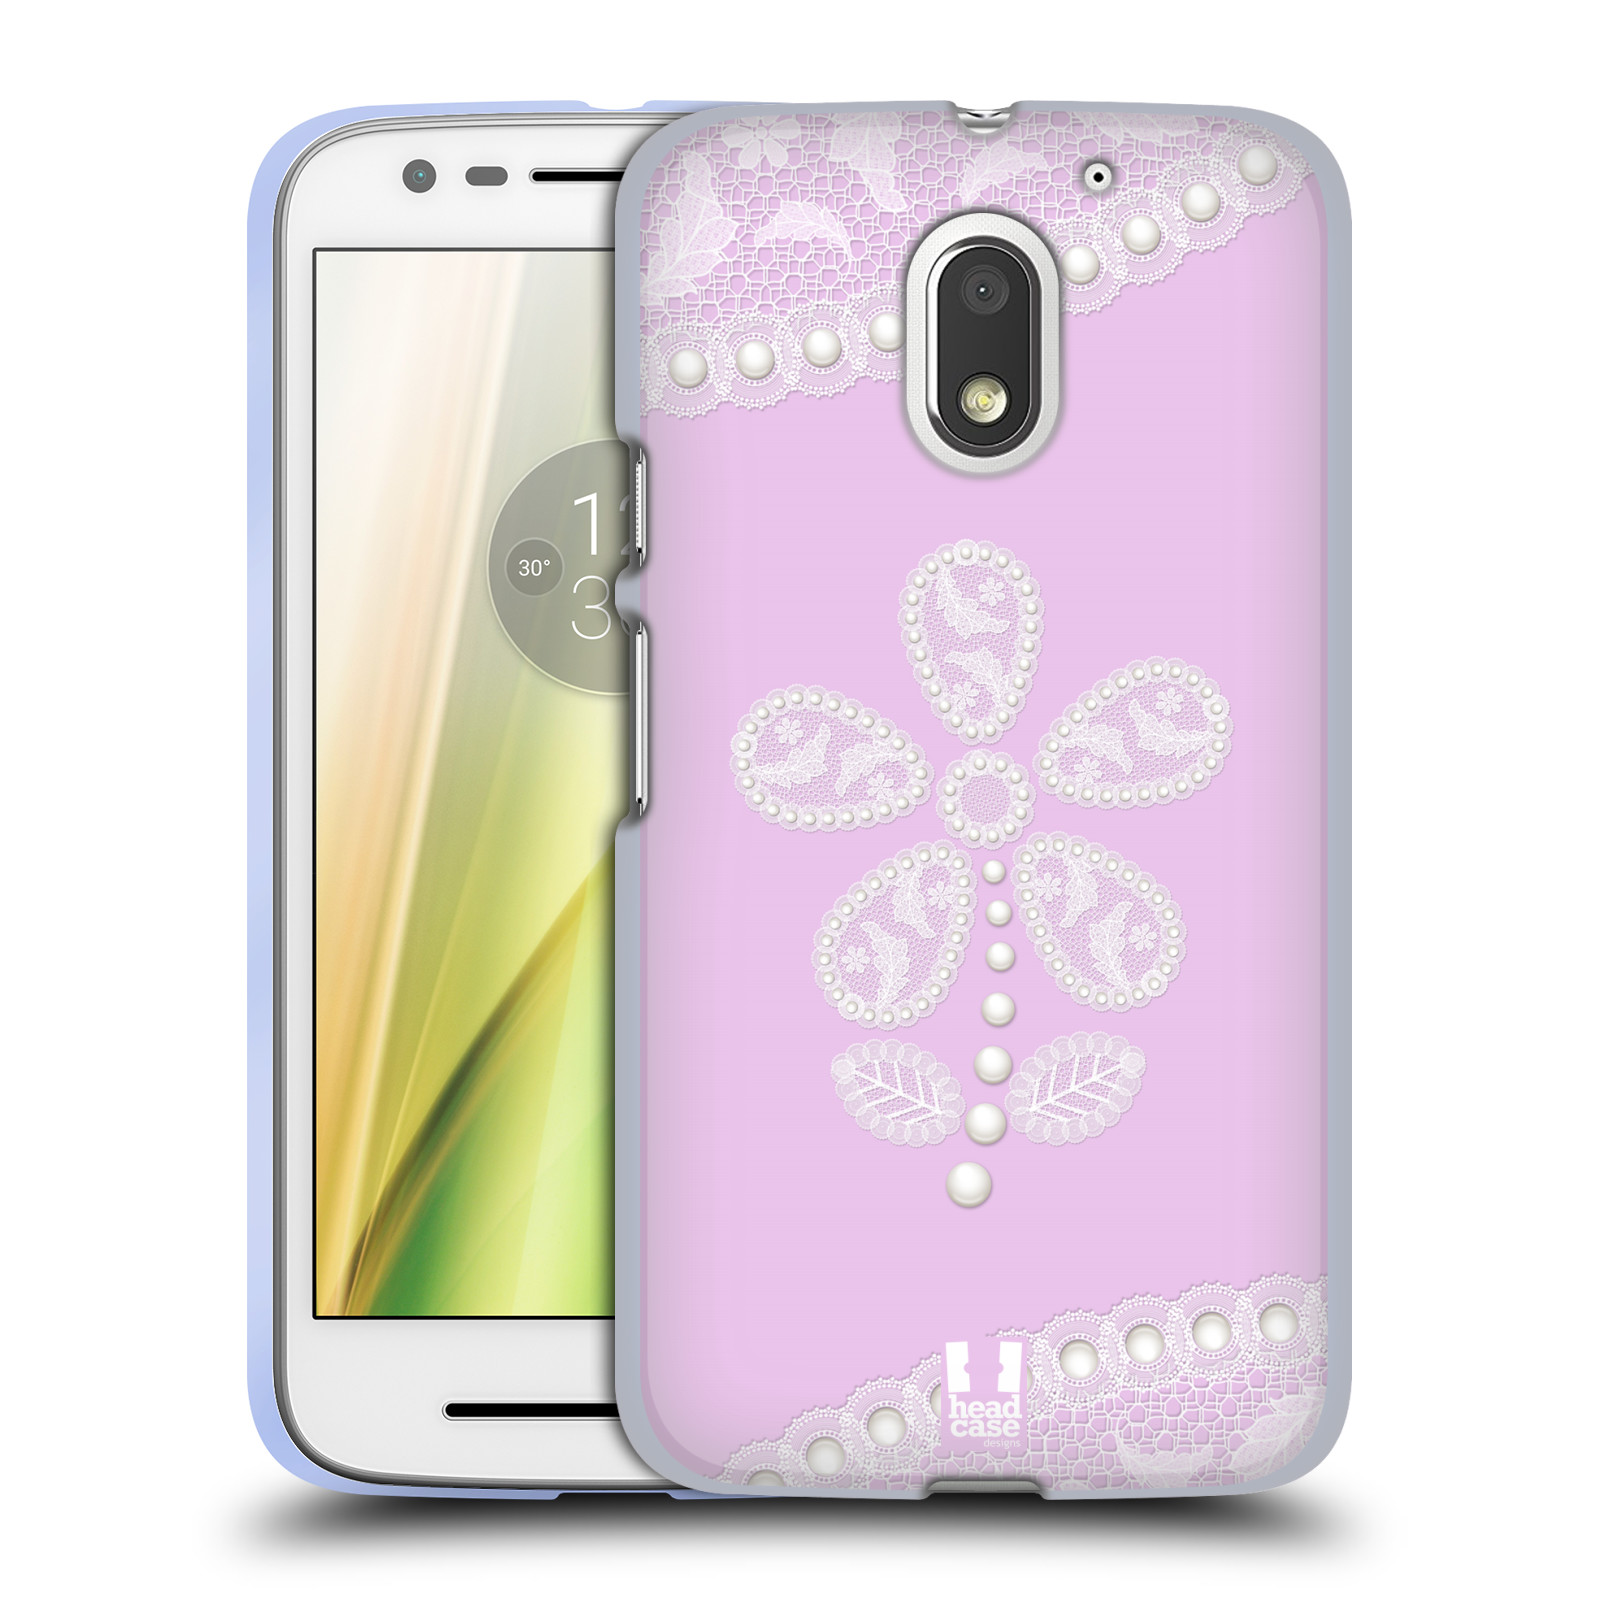 HEAD-CASE-DESIGNS-LACCI-E-PERLE-2-CASE-IN-GEL-PER-MOTOROLA-MOTO-E3-POWER